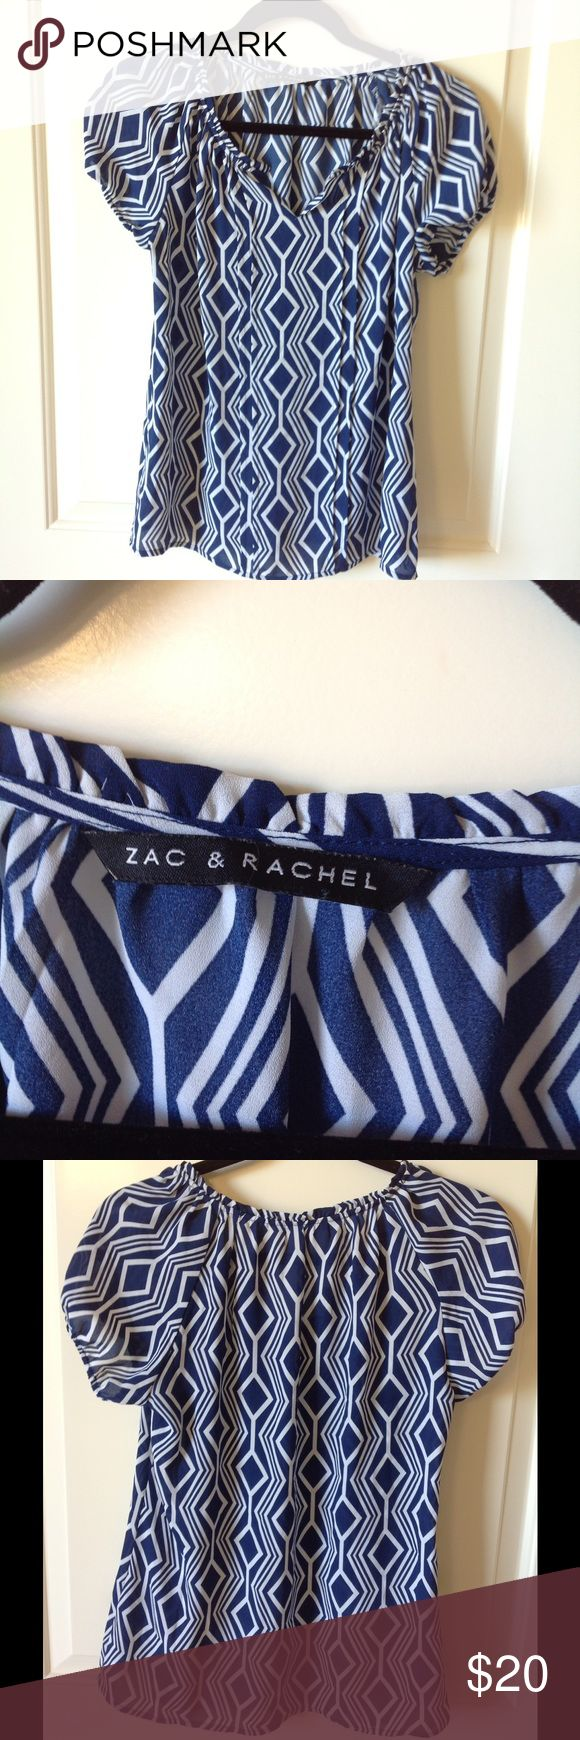 Zac and Rachel navy and white top size s Blue and white, pleated front, gathered v- neck makes this a fun top to wear!  Machine washable. Zak and Rachel Tops Blouses